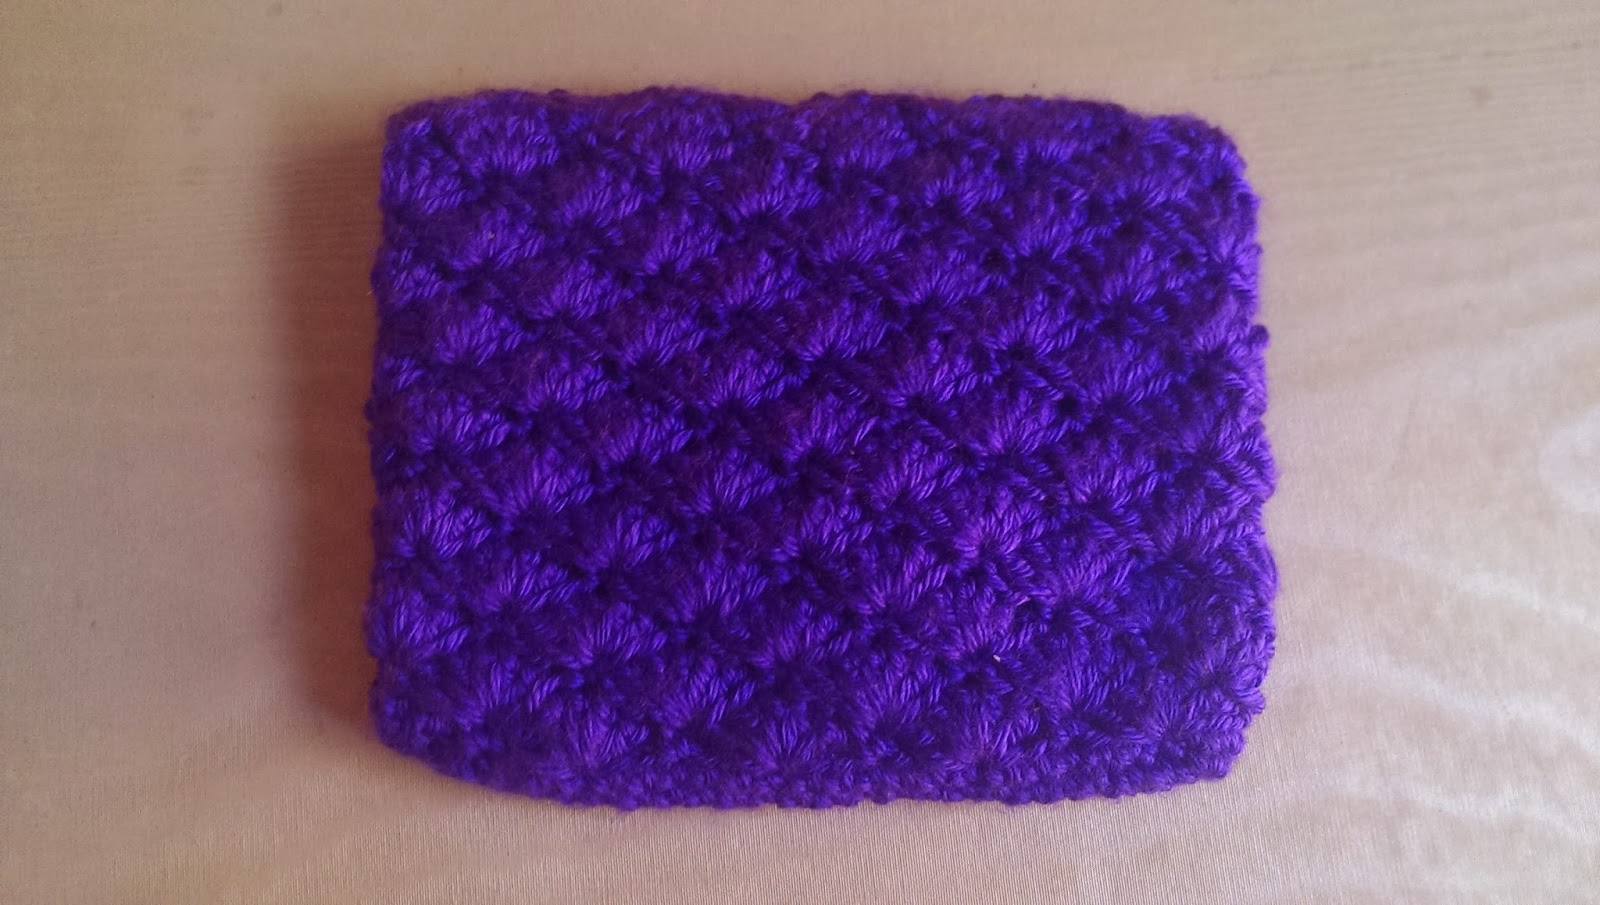 This Is The Back Of The Case I Really Like The Pattern It Made, And The  Shell Stitch Makes It Have A Cool Texture! This Picture Looks Really Neat  If You